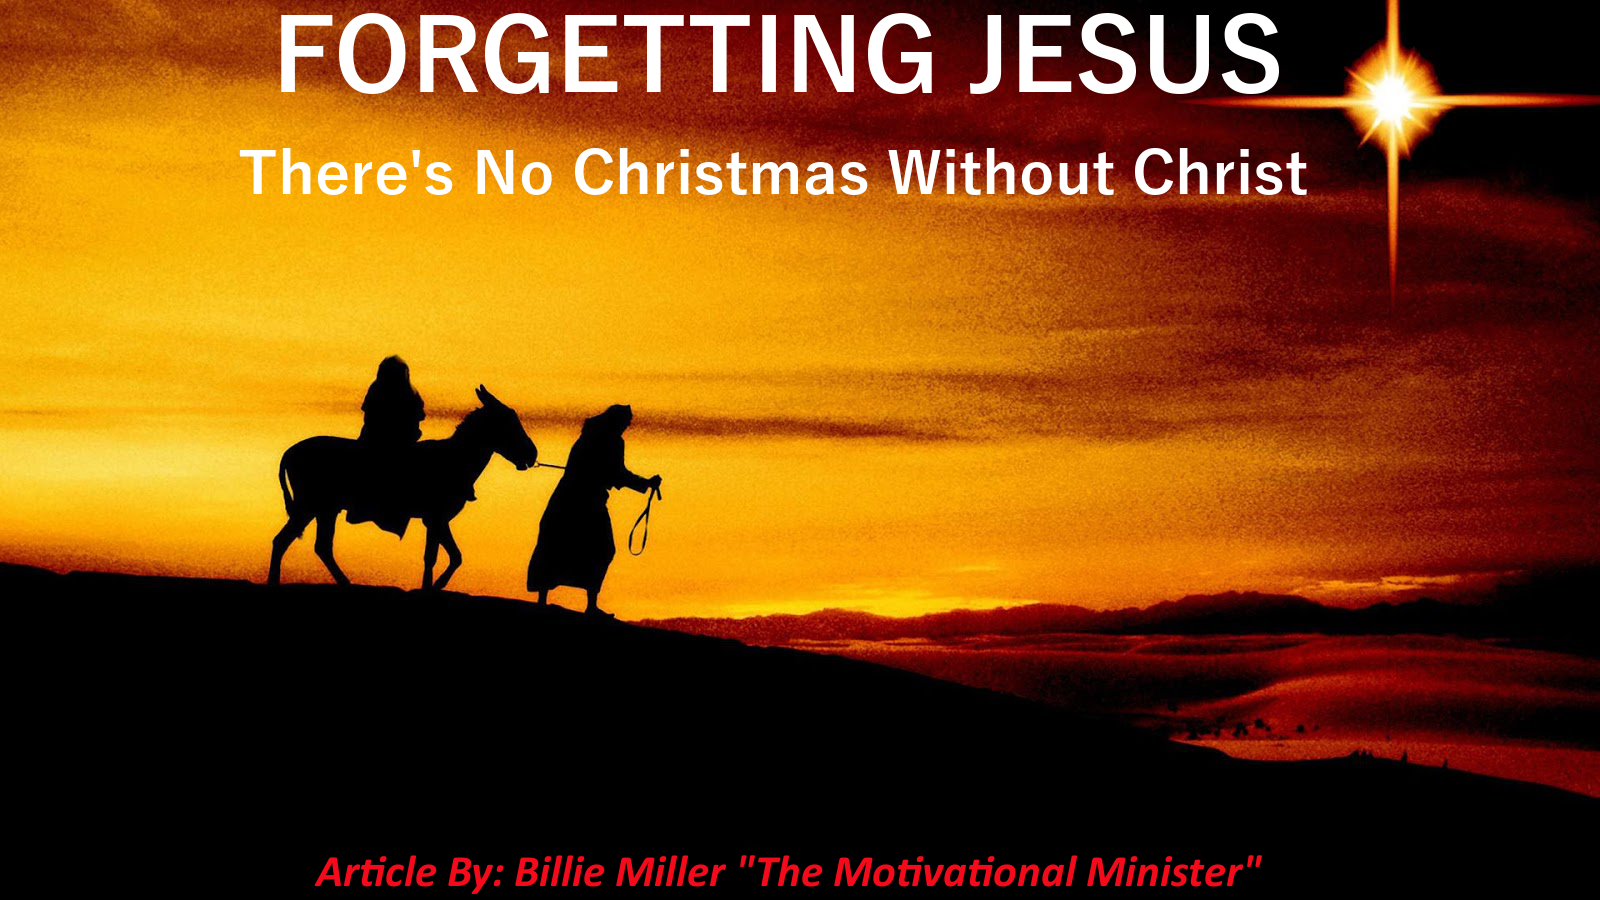 ForgettingJesusPicture